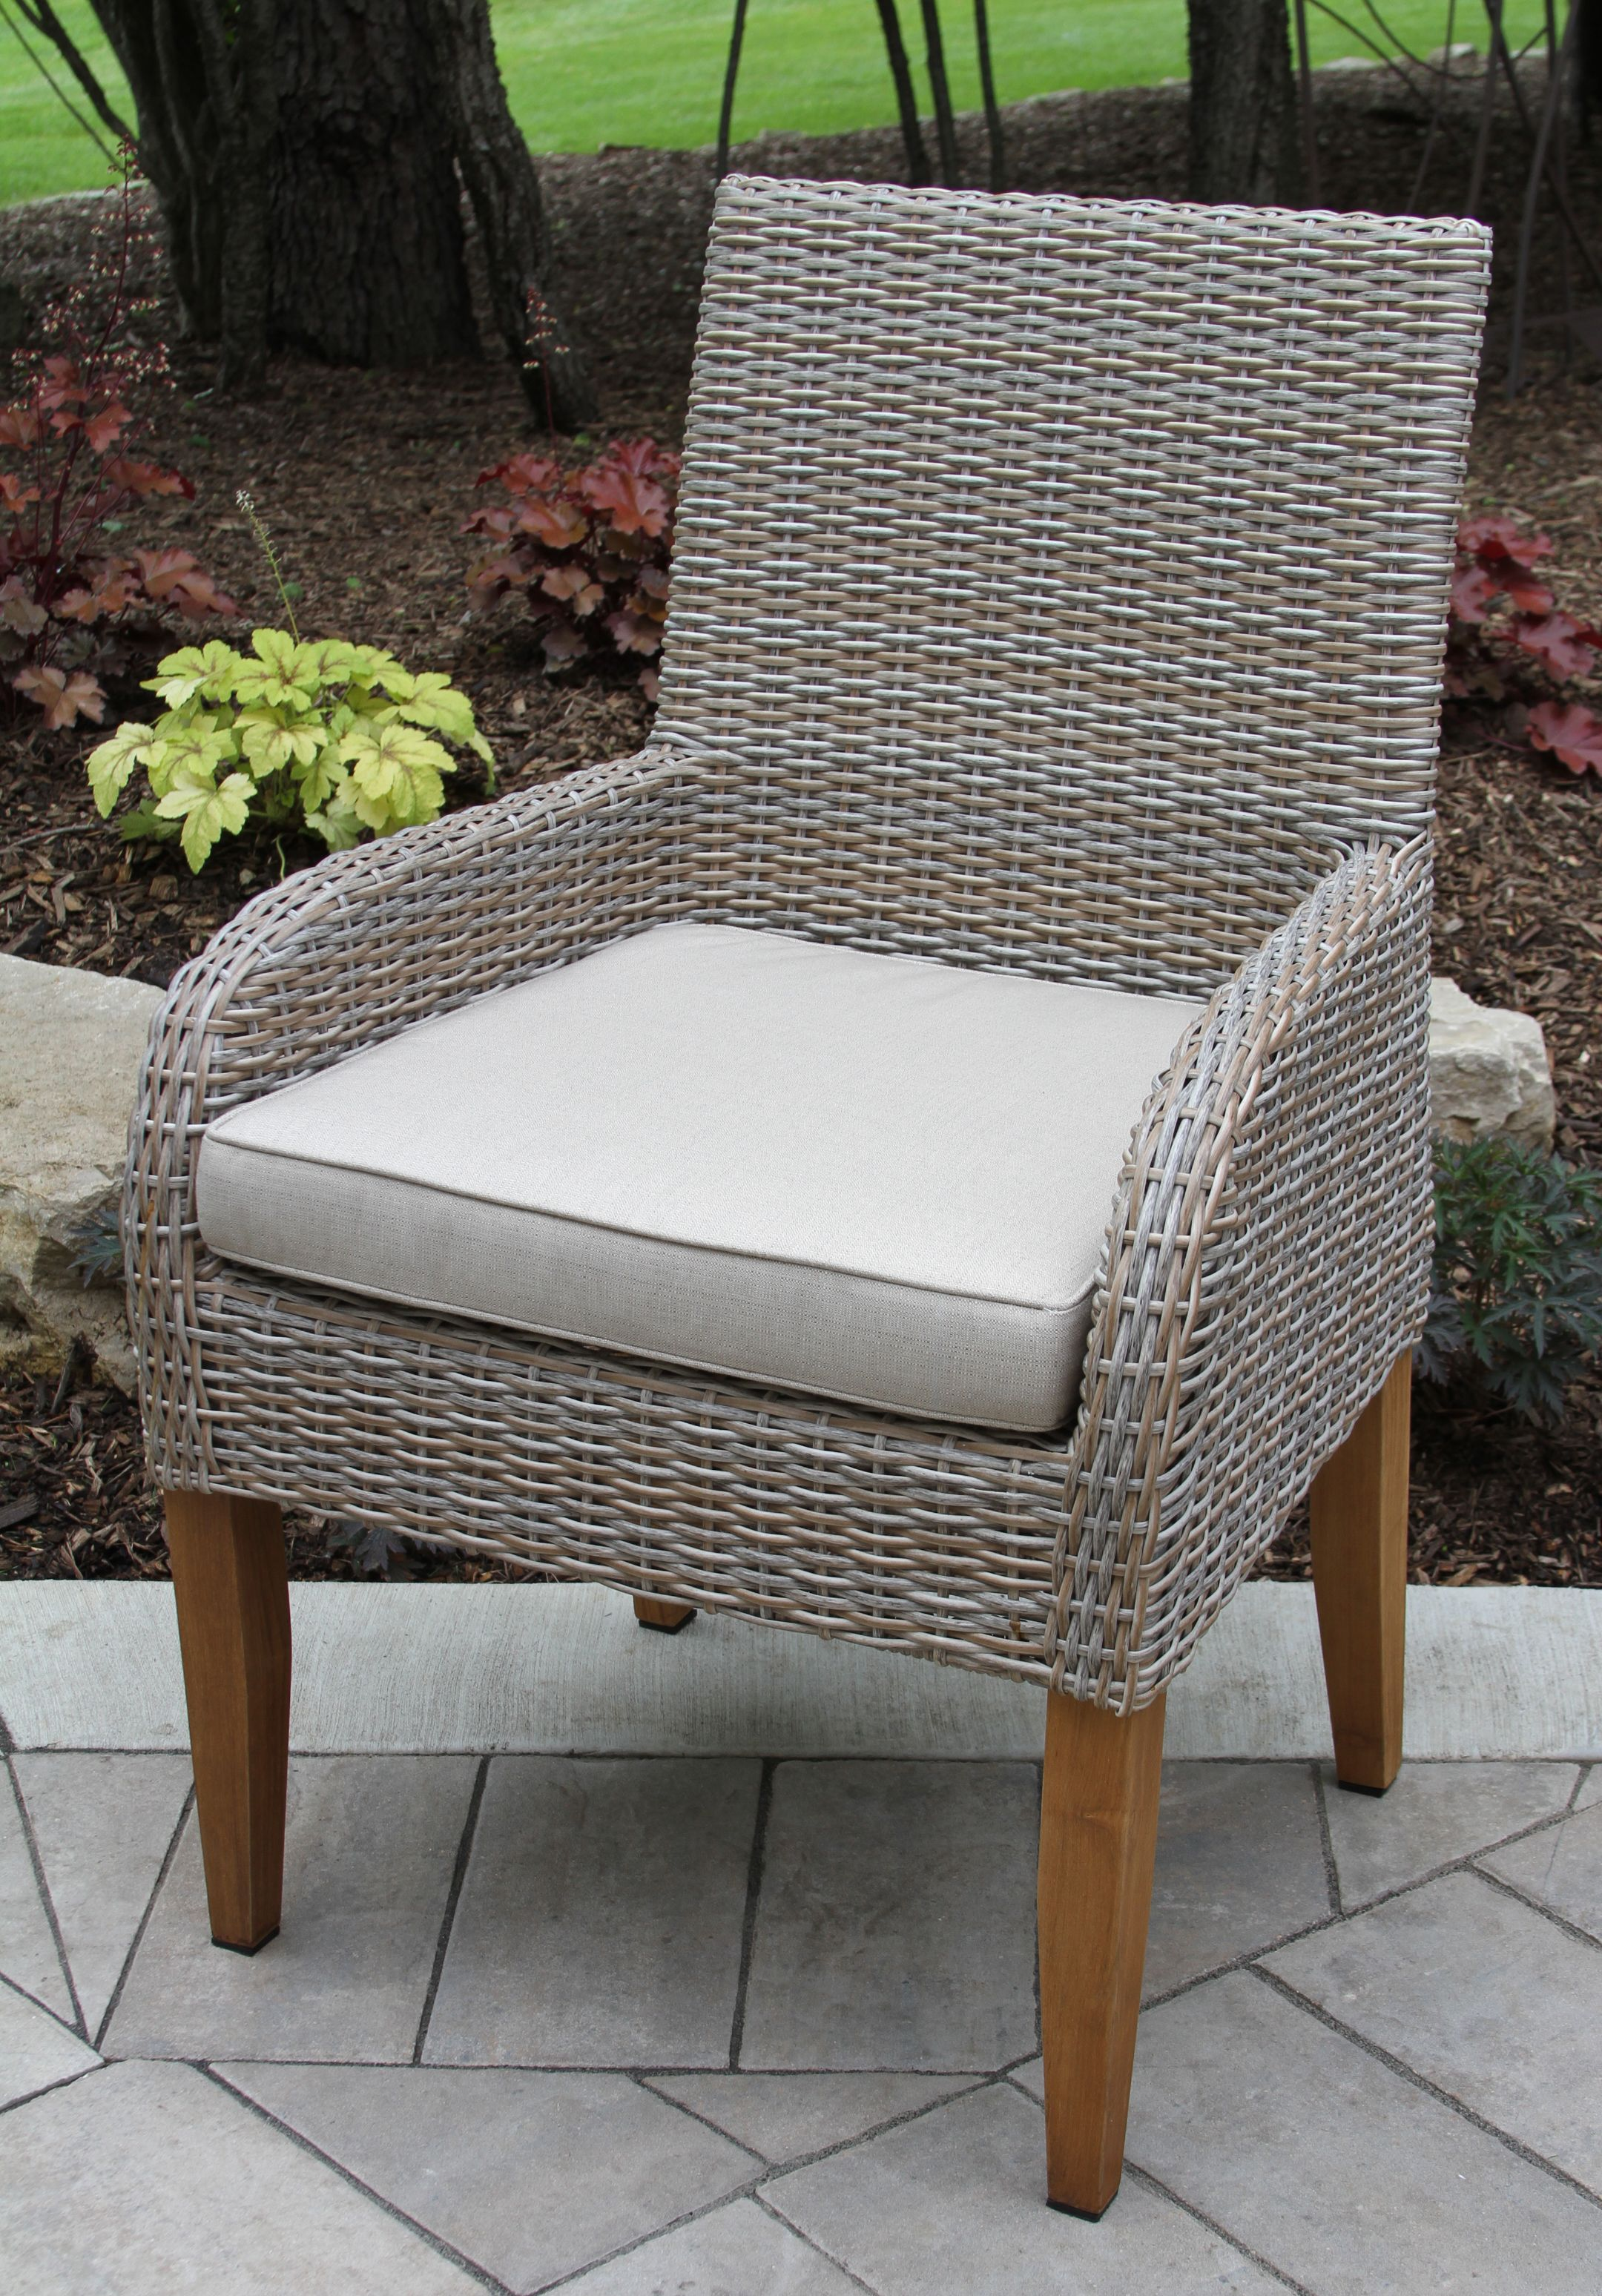 All weather wicker teak dining chair with sunbrella cushion 2 pack